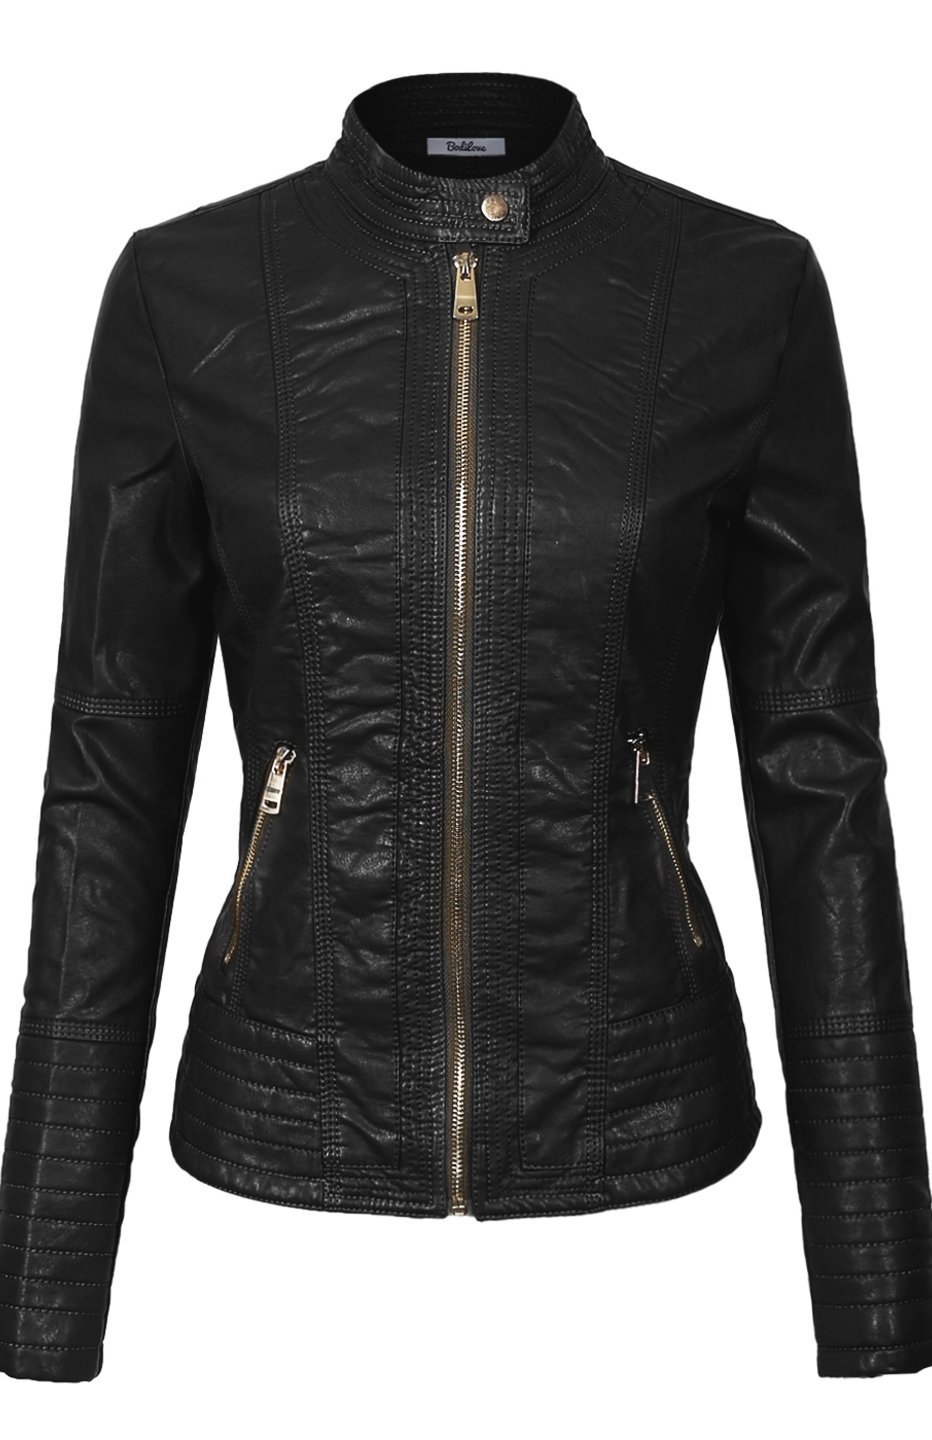 BodiLove Women's Slim Tailoring Faux Leather Zip Up Moto Biker PU Jacket Black XS